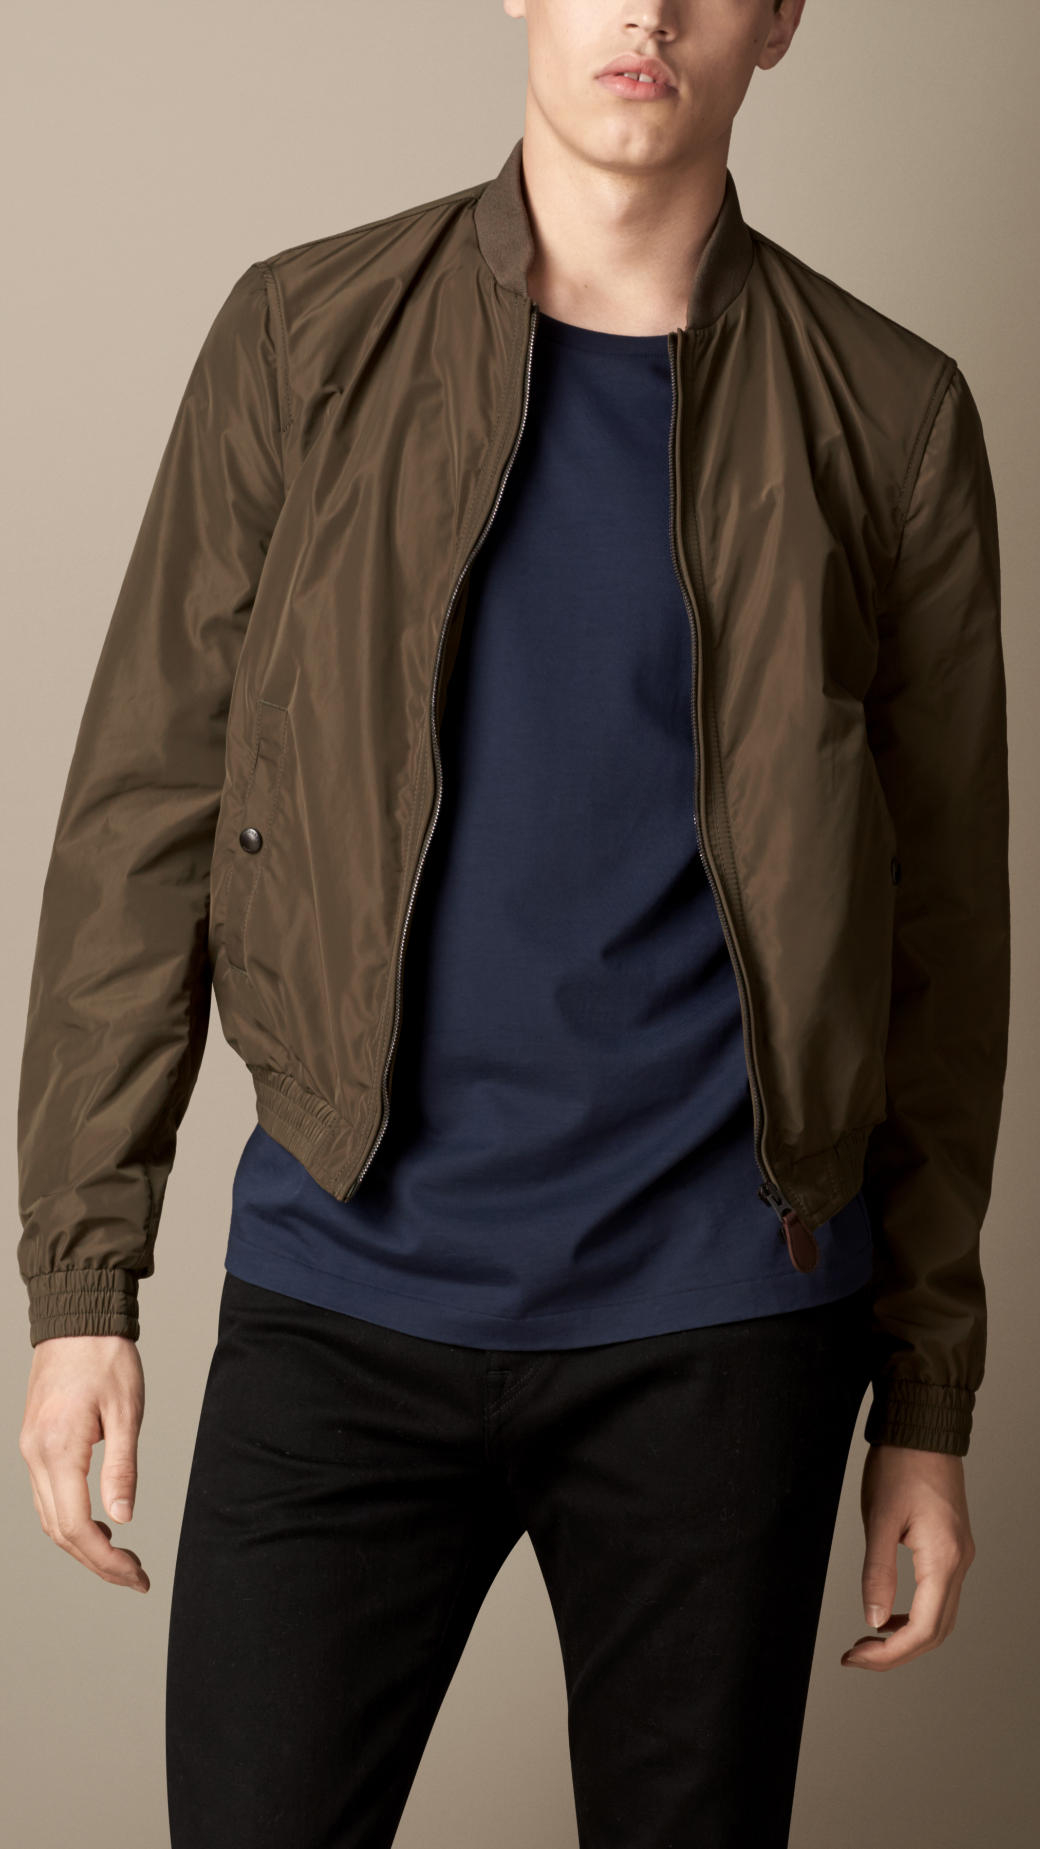 Lightweight Showerproof Bomber Jacket - Blue Burberry Countdown Package Cheap Price Pre Order Cheap Online Best Place Pre Order For Sale xO2s2wq